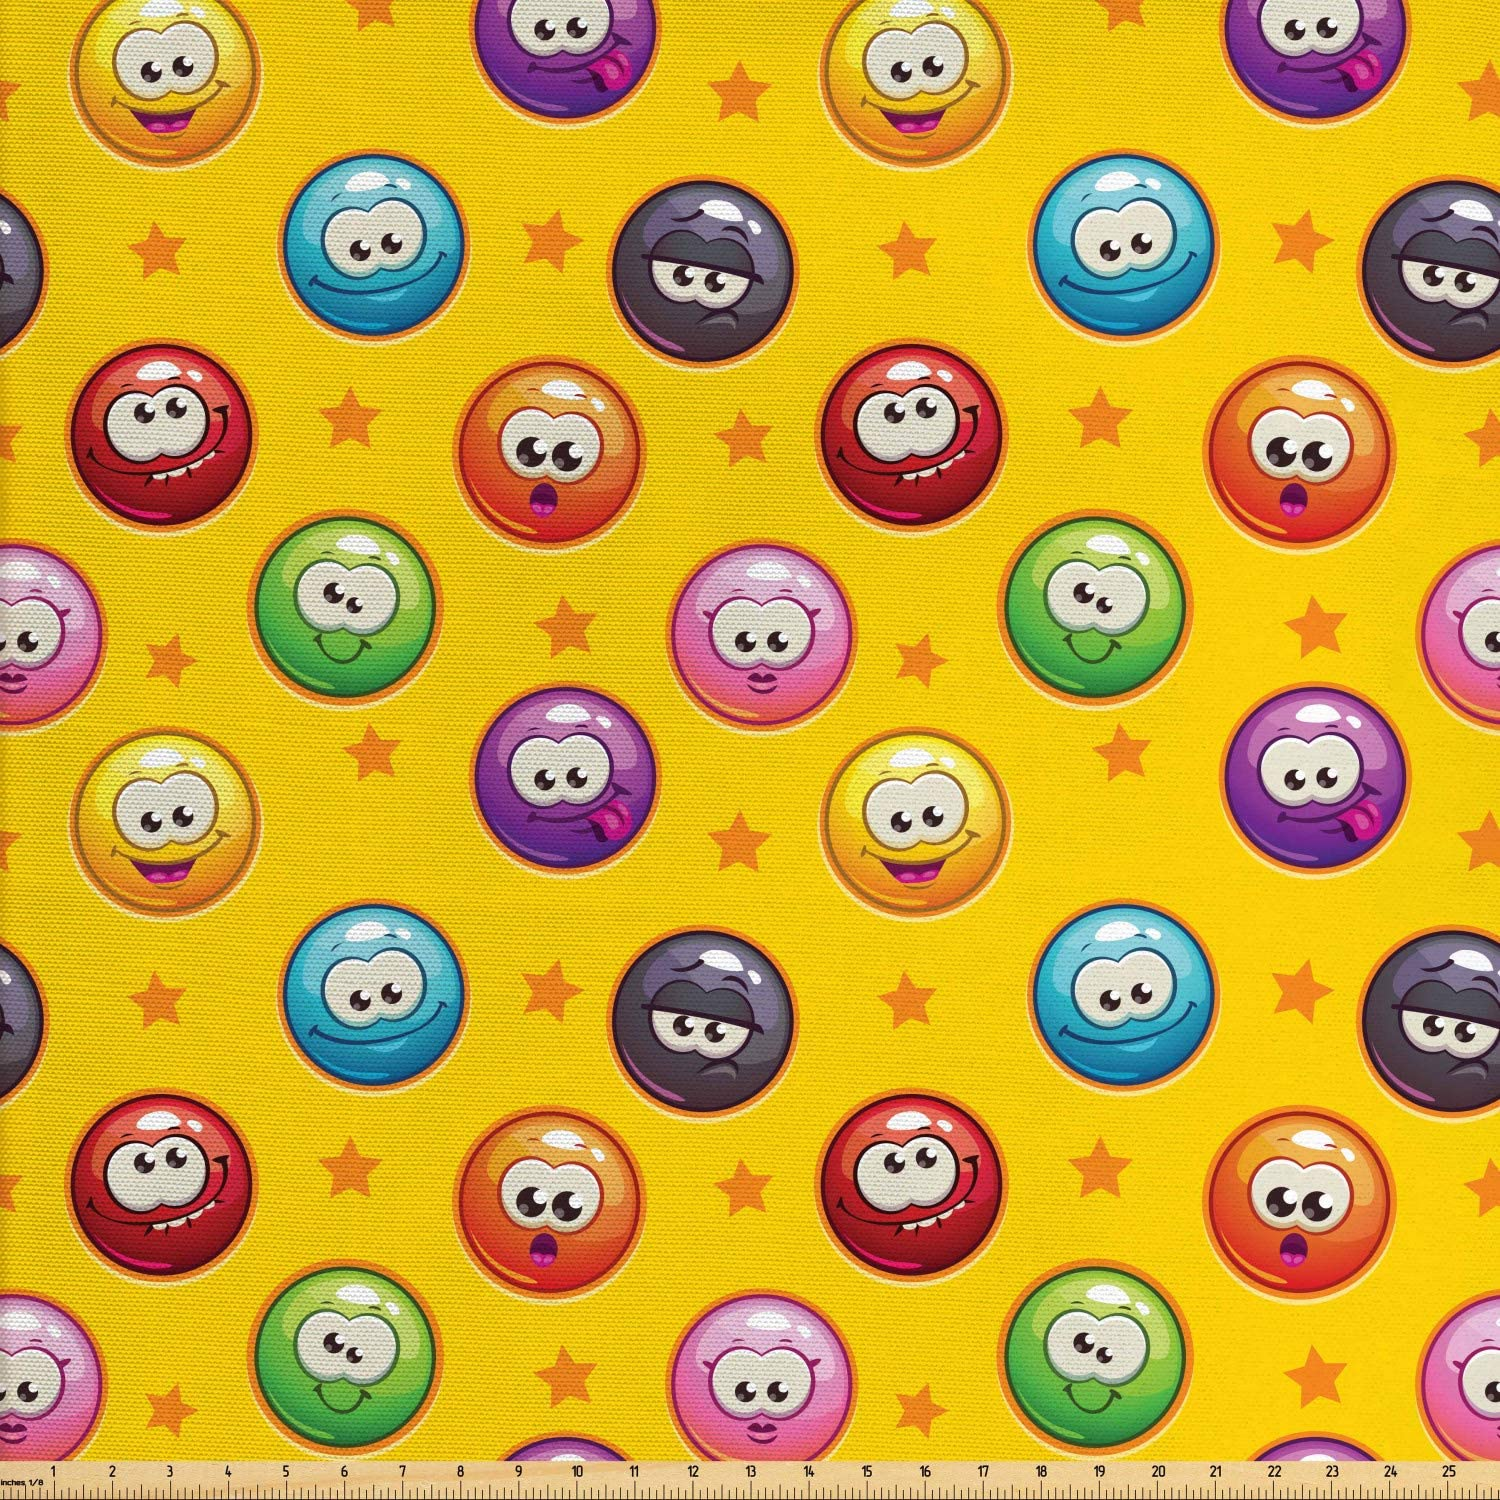 Ambesonne Emoji Fabric by The Yard, Smiley Surprised Grumpy Sad Happy Mood Faces Background with Little Stars Art Print, Decorative Fabric for Upholstery and Home Accents, 1 Yard, Earth Yellow